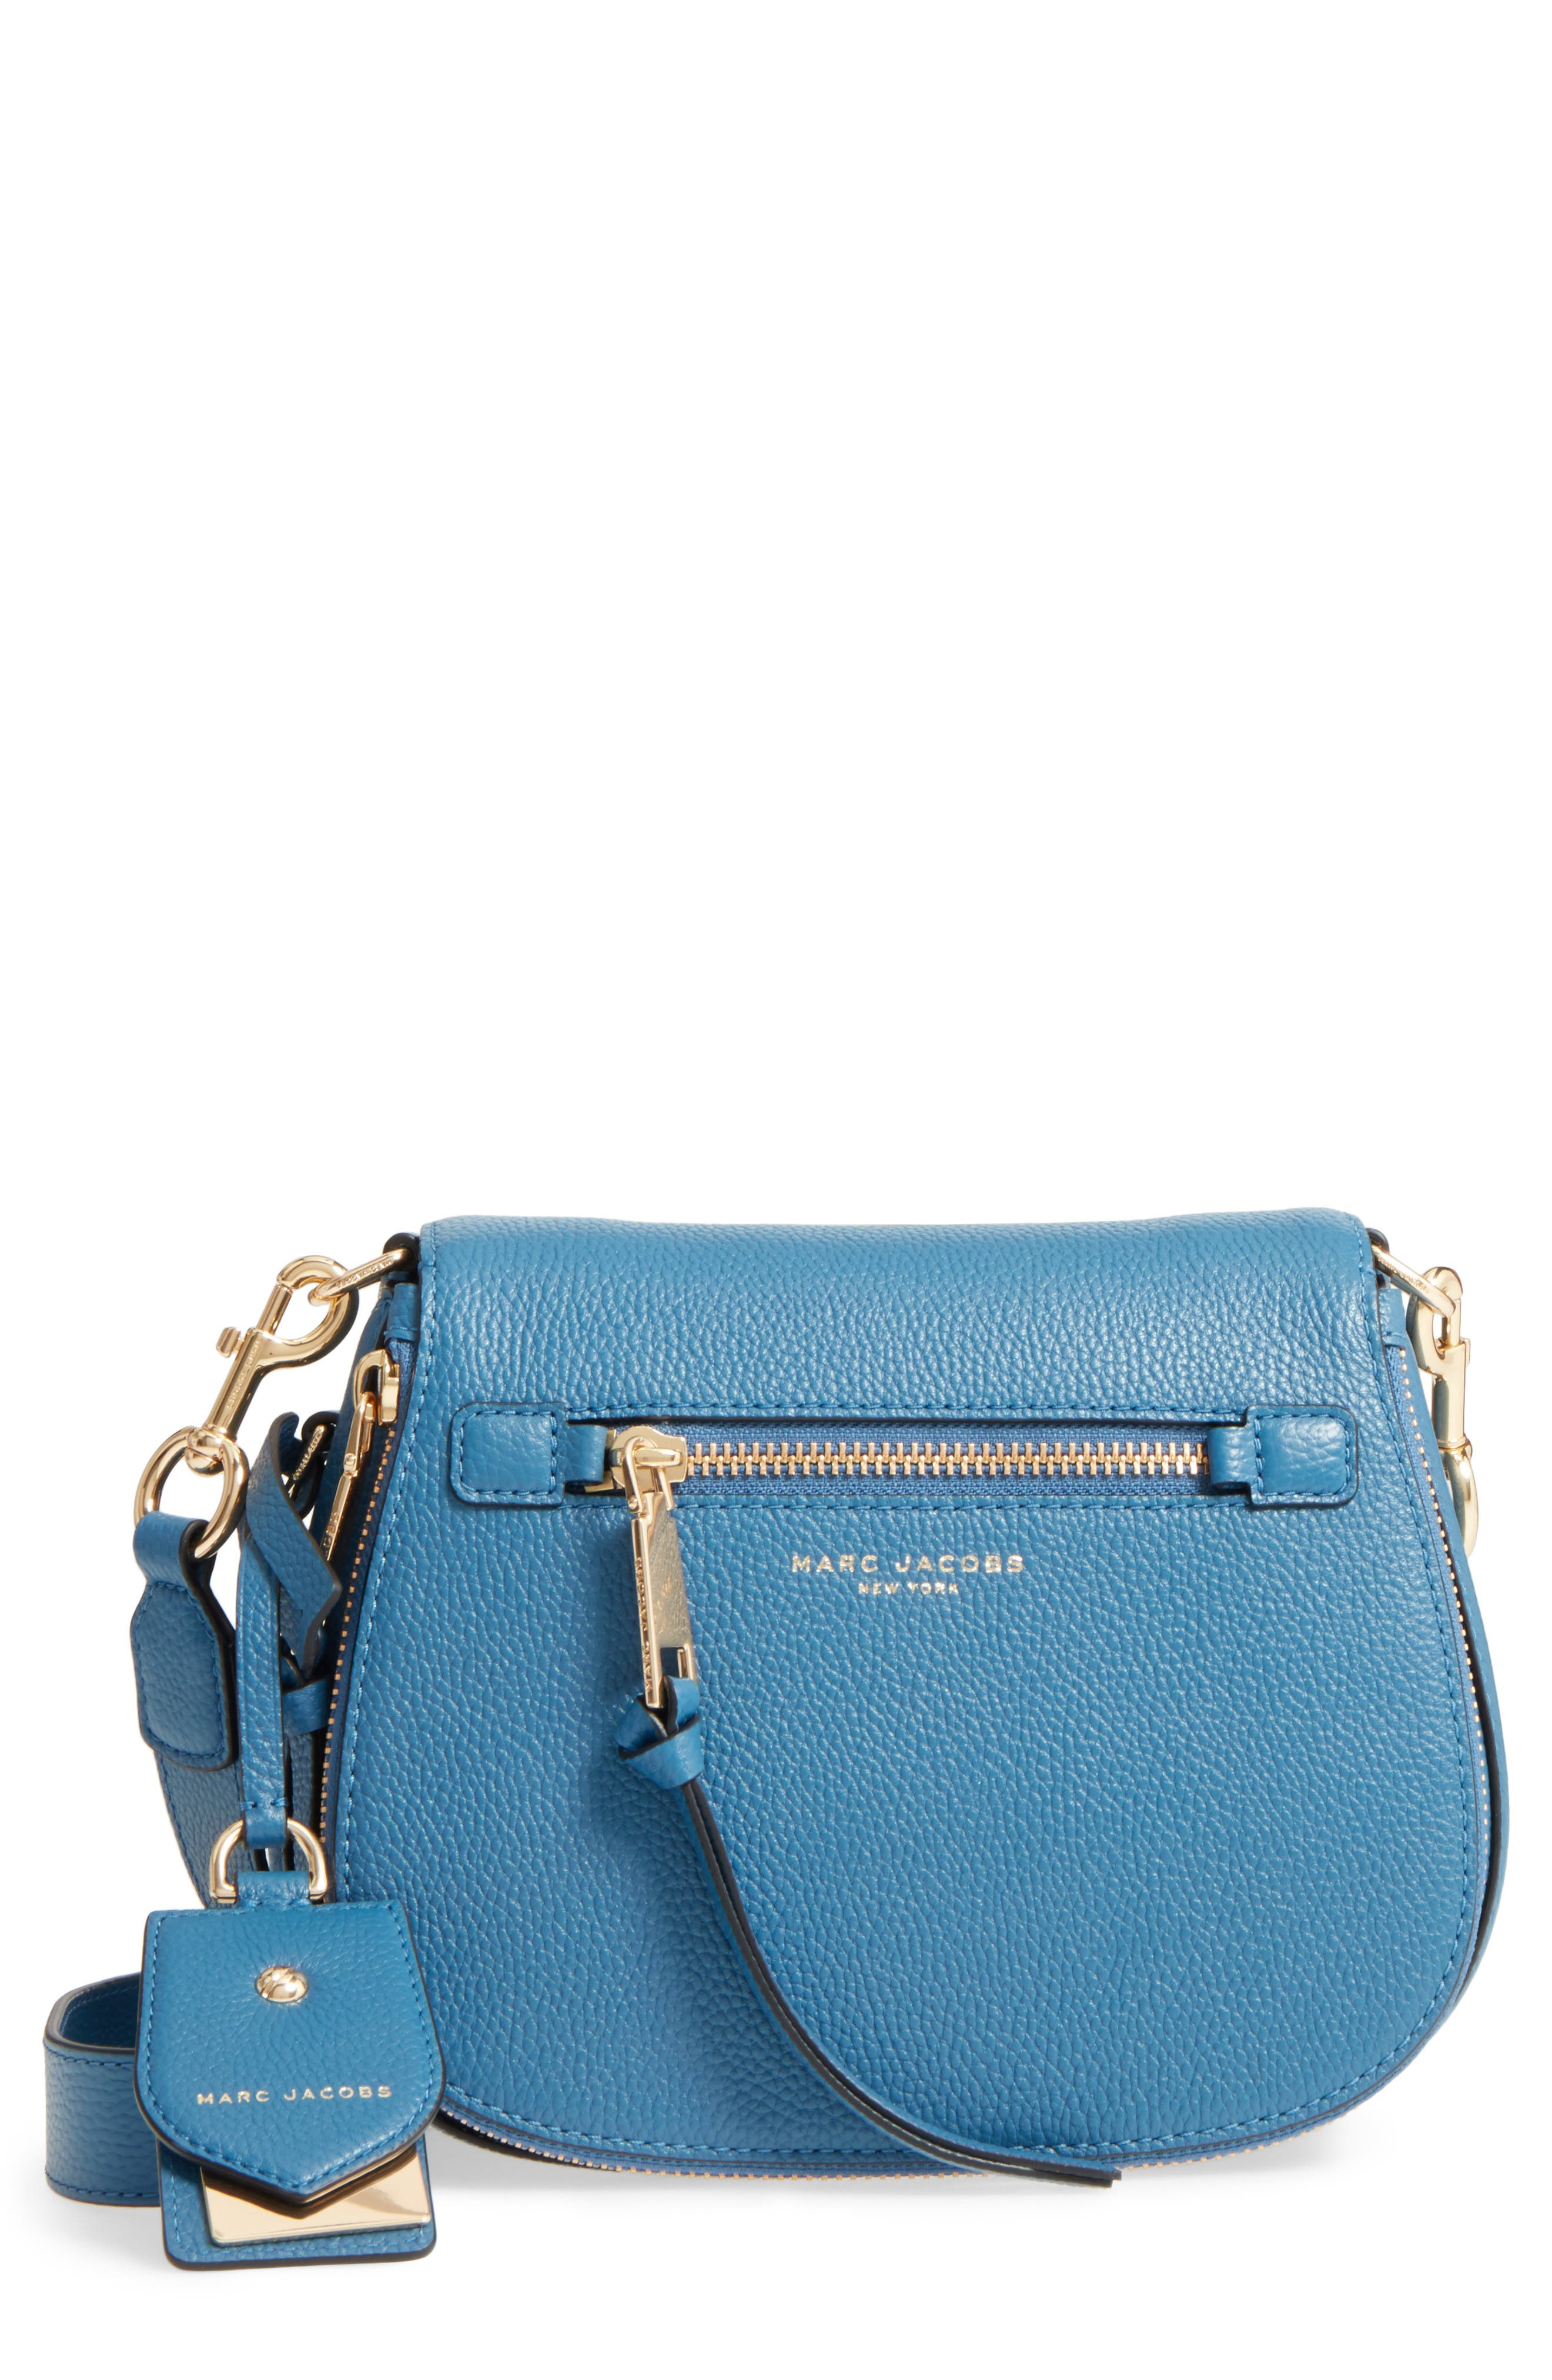 Small Recruit Nomad Pebbled Leather Crossbody Bag,                             Main thumbnail 1, color,